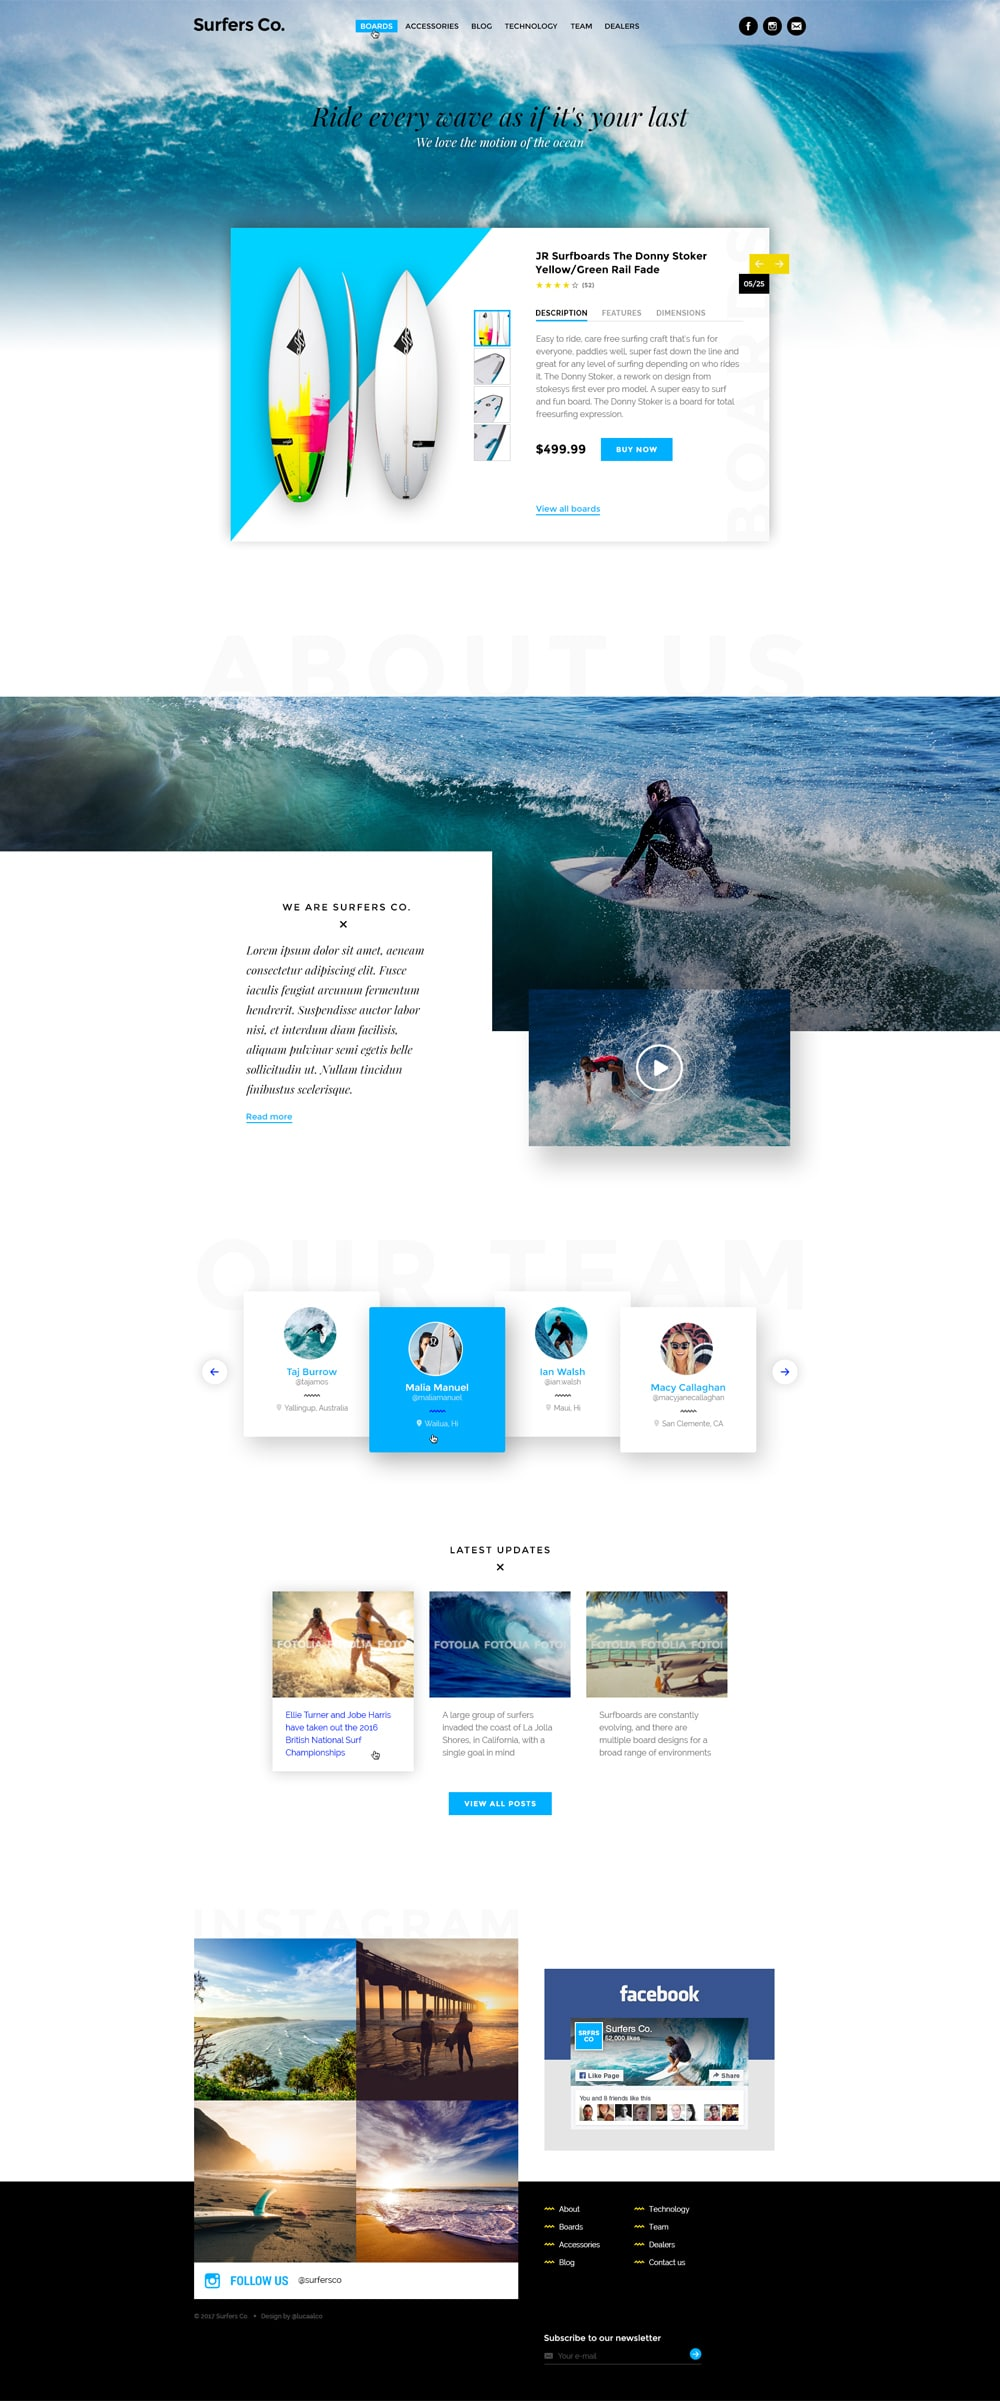 Surfers Co Web Template PSD for Surf Shop